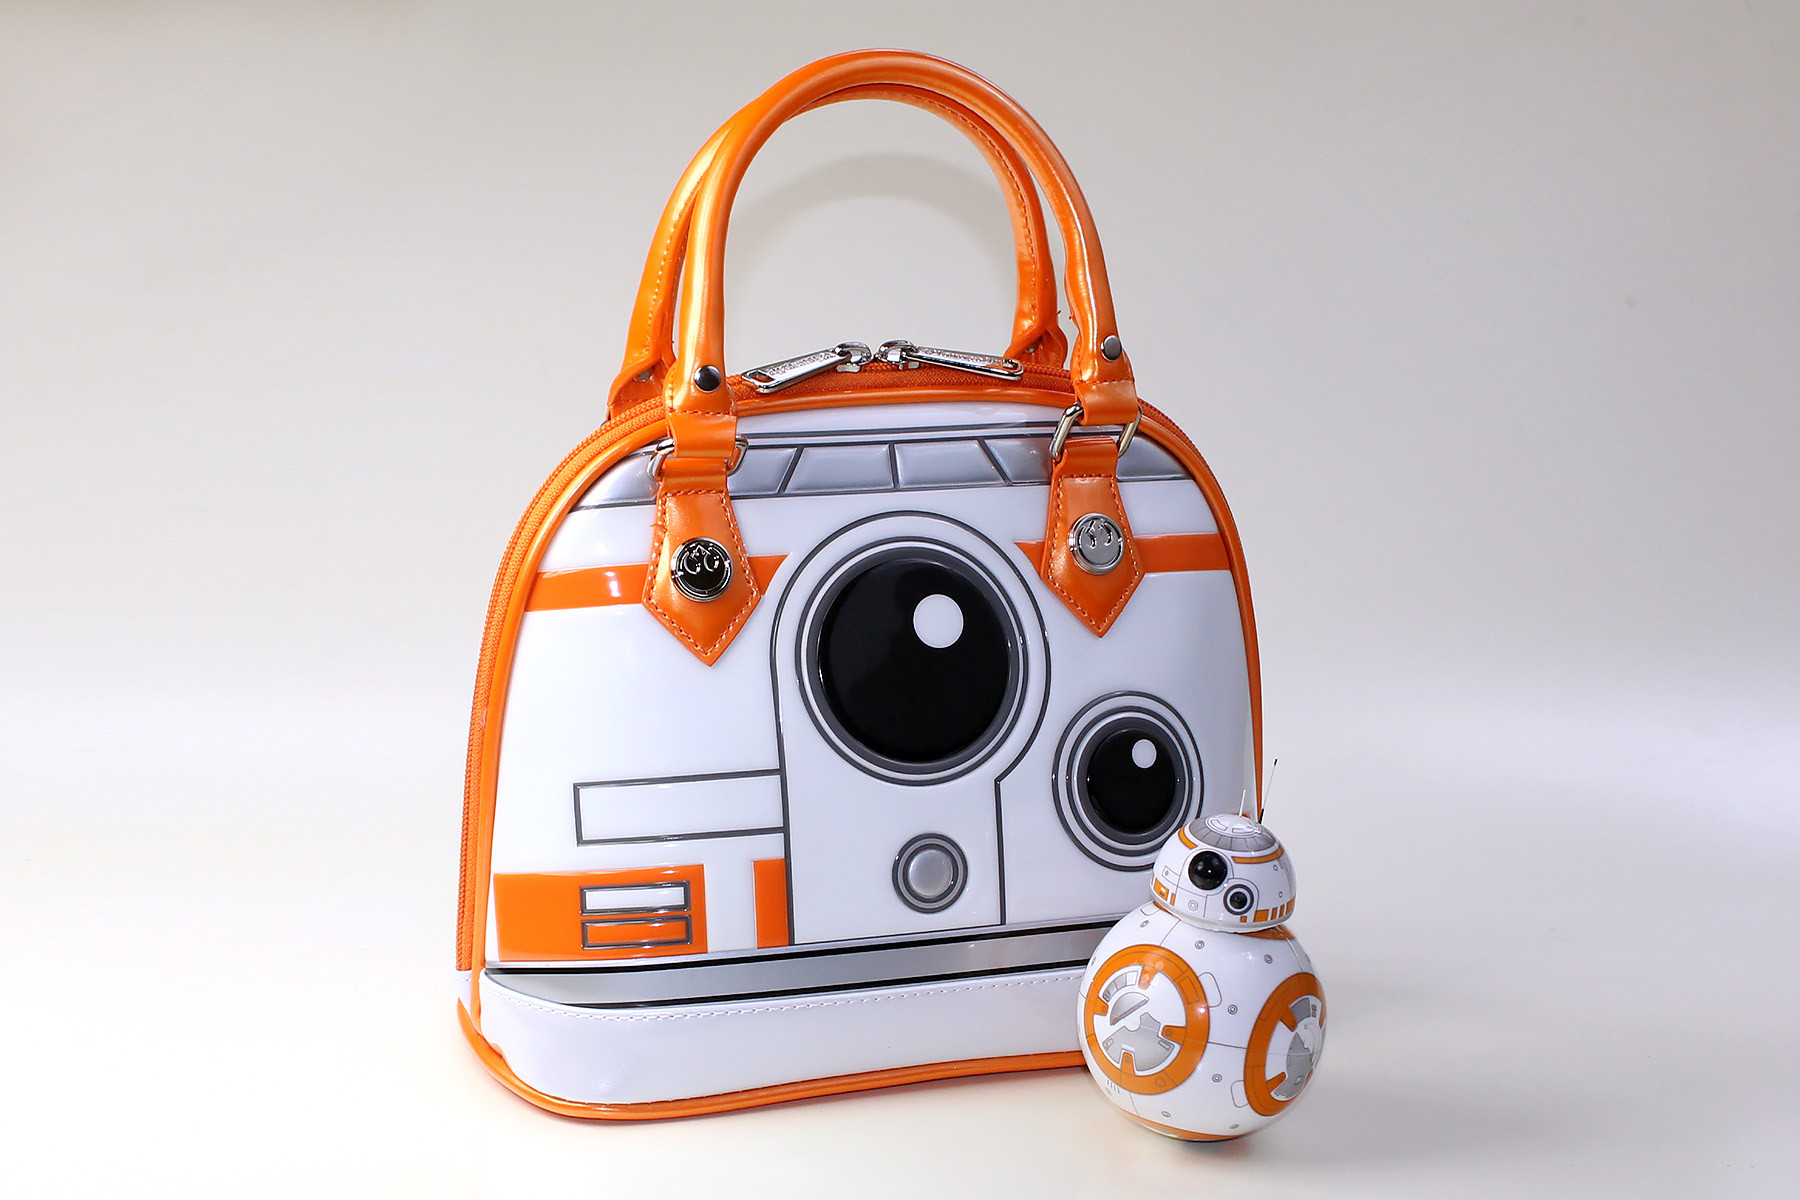 Loungefly - BB-8 dome handbag (with Sphero BB-8, not included)